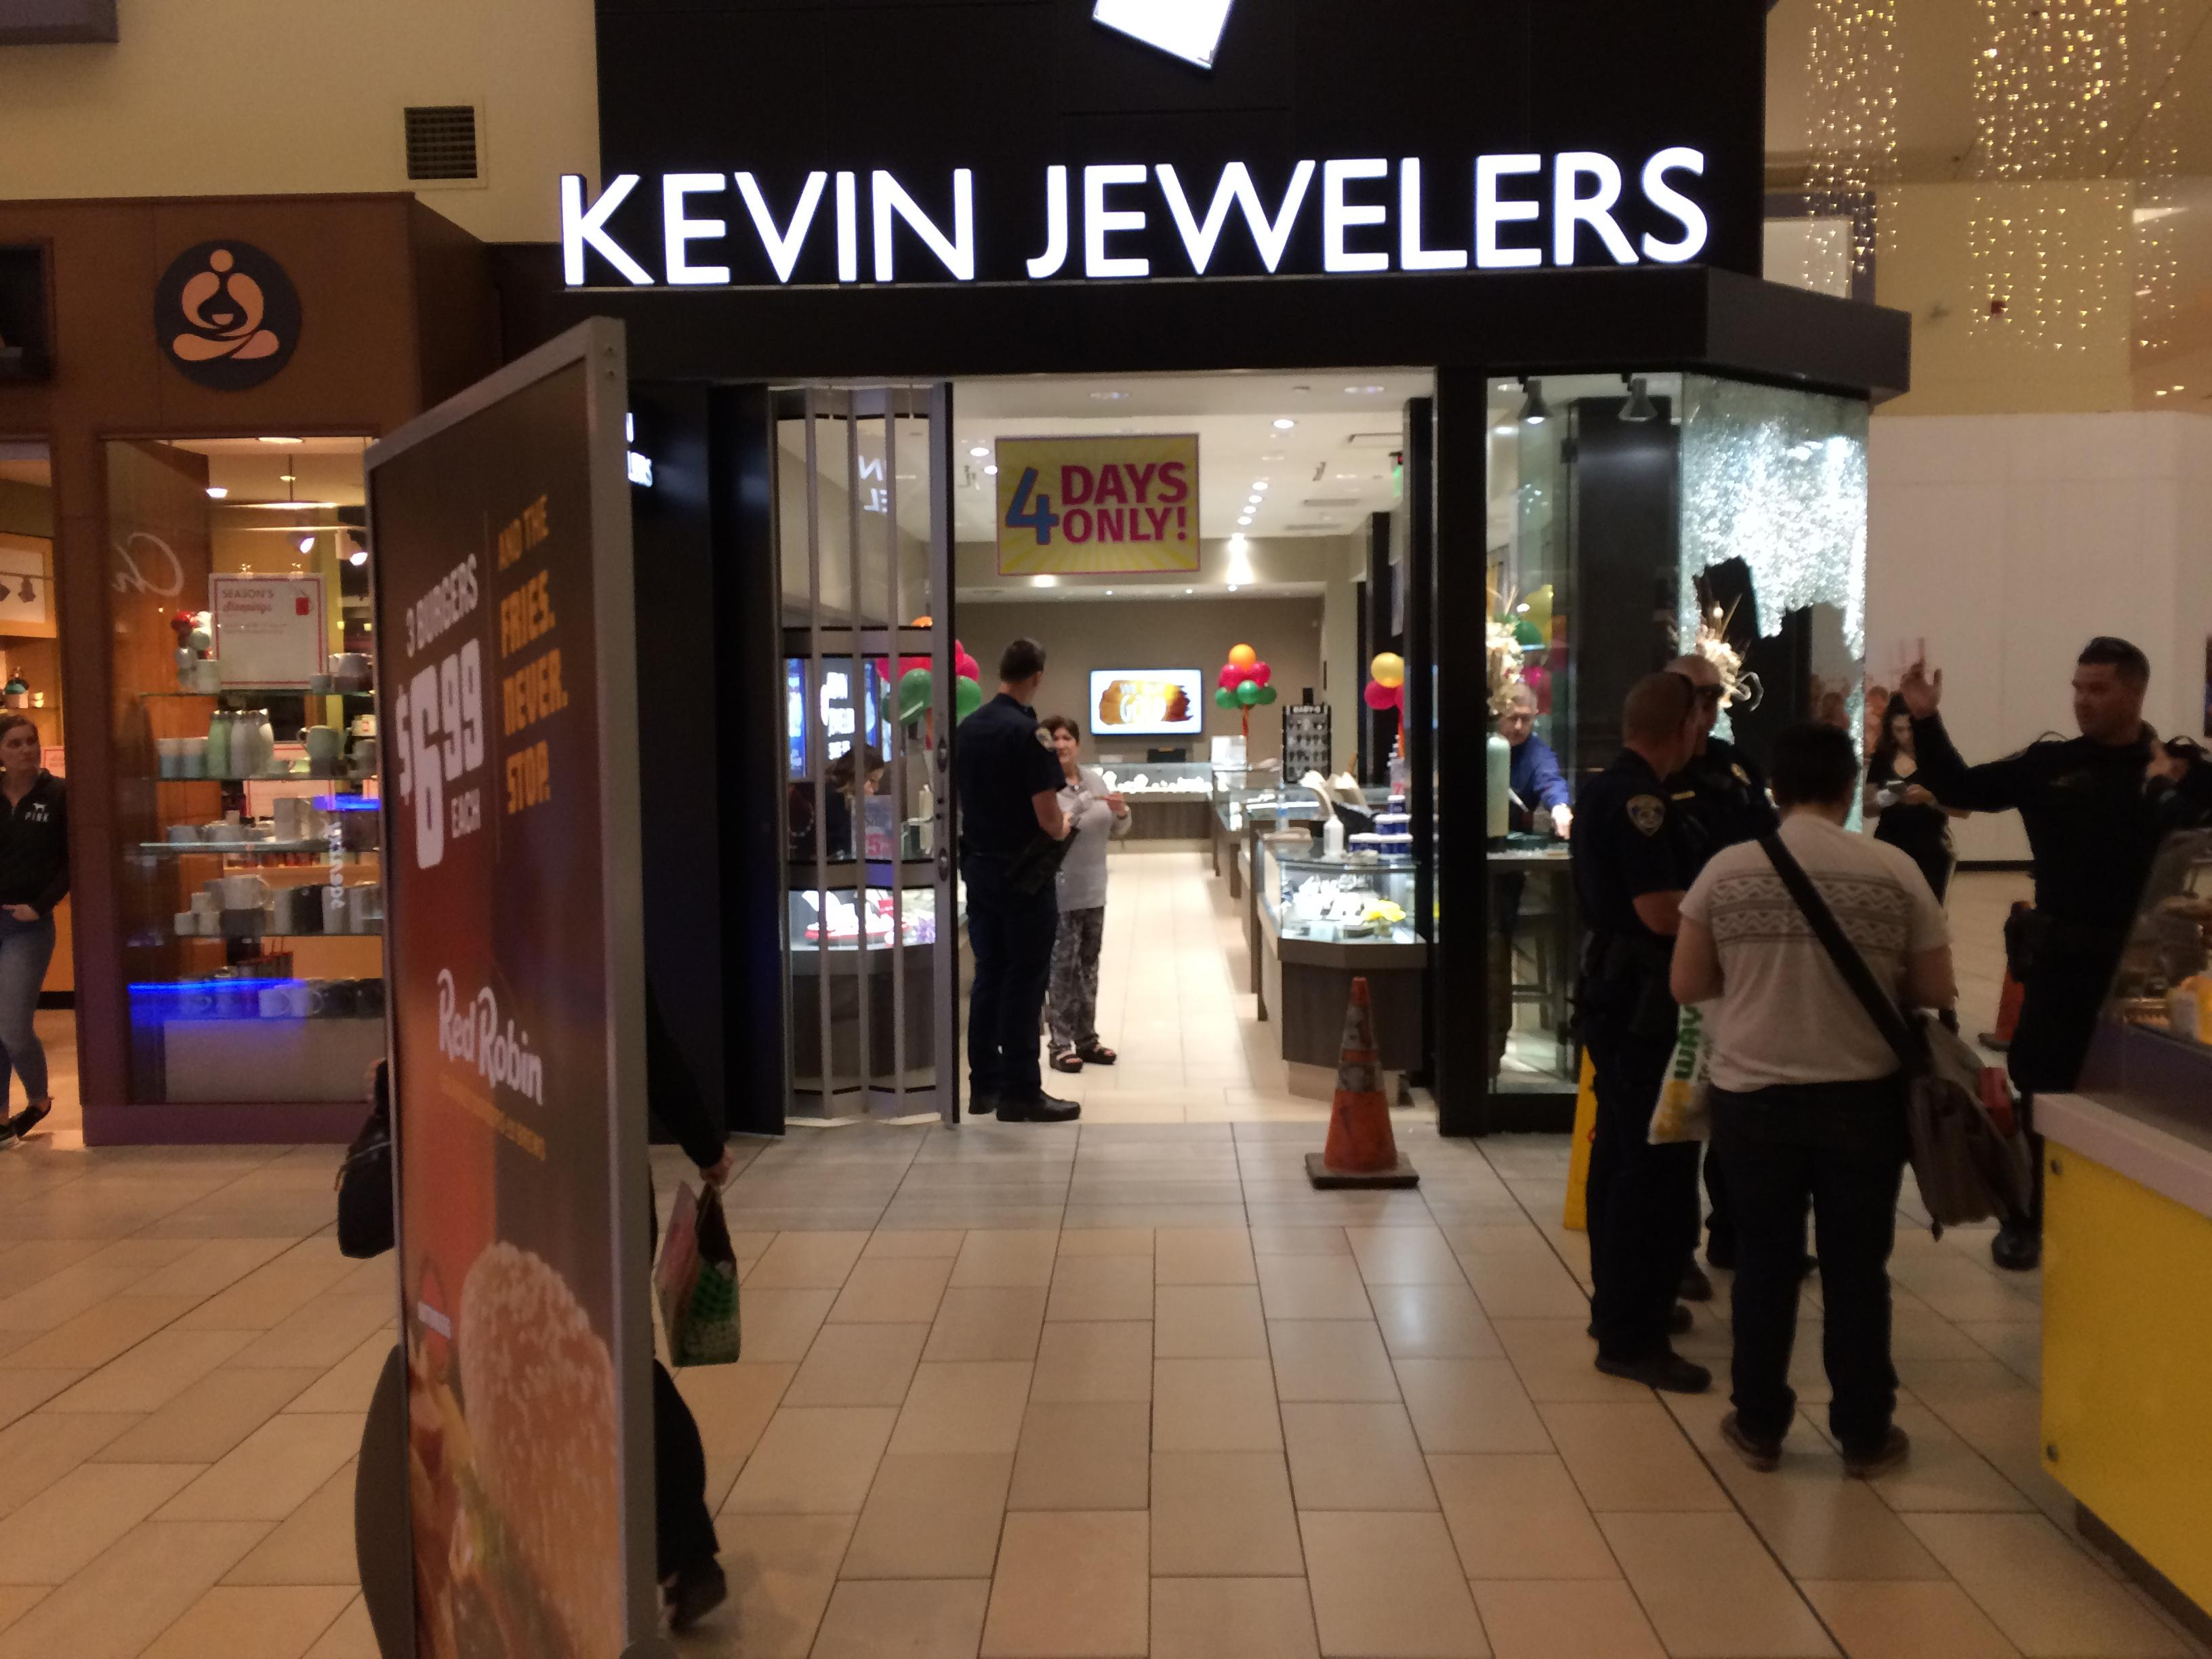 Police are on scene of a robbery Tuesday, Nov. 14, 2017, at the Kevin Jewelers store in the Valley Plaza Mall in Bakersfield, Calif. (KBAK/KBFX photo)